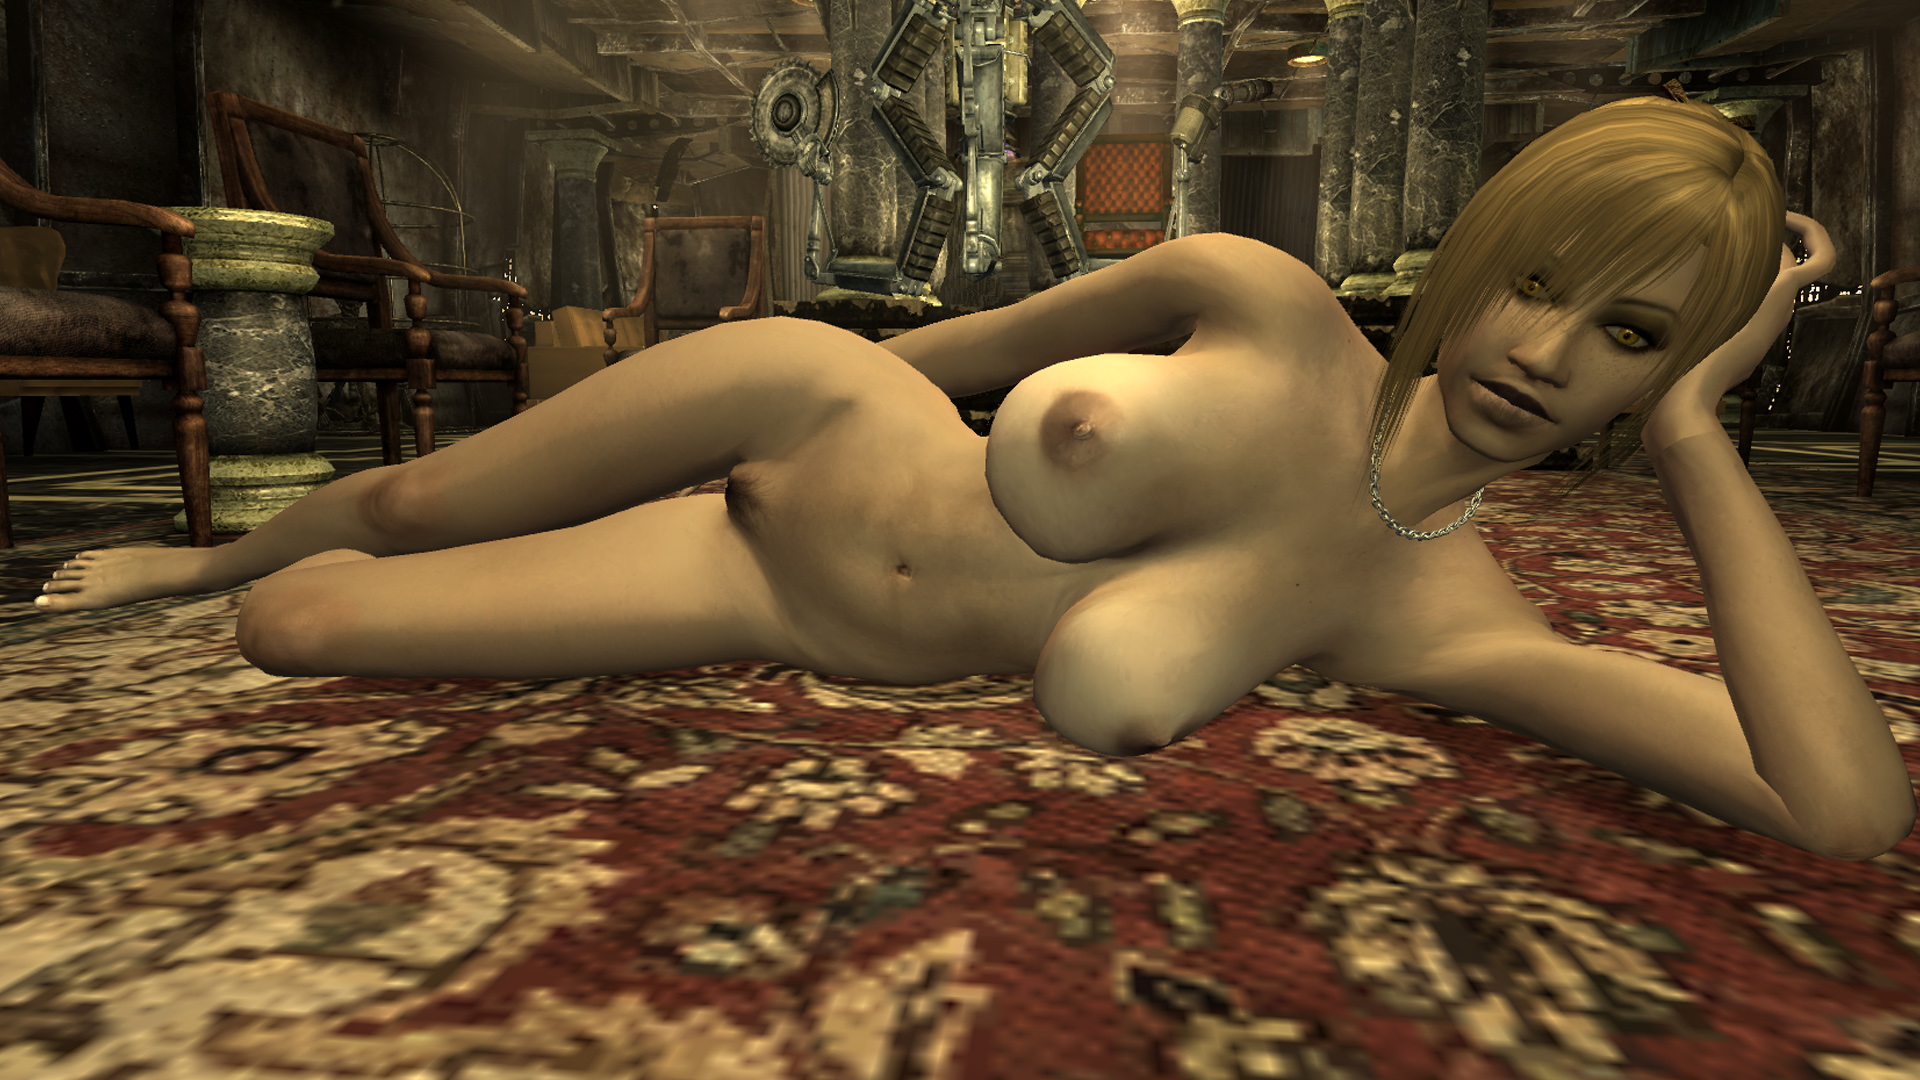 Fallout 3 the nude patch hardcore photo